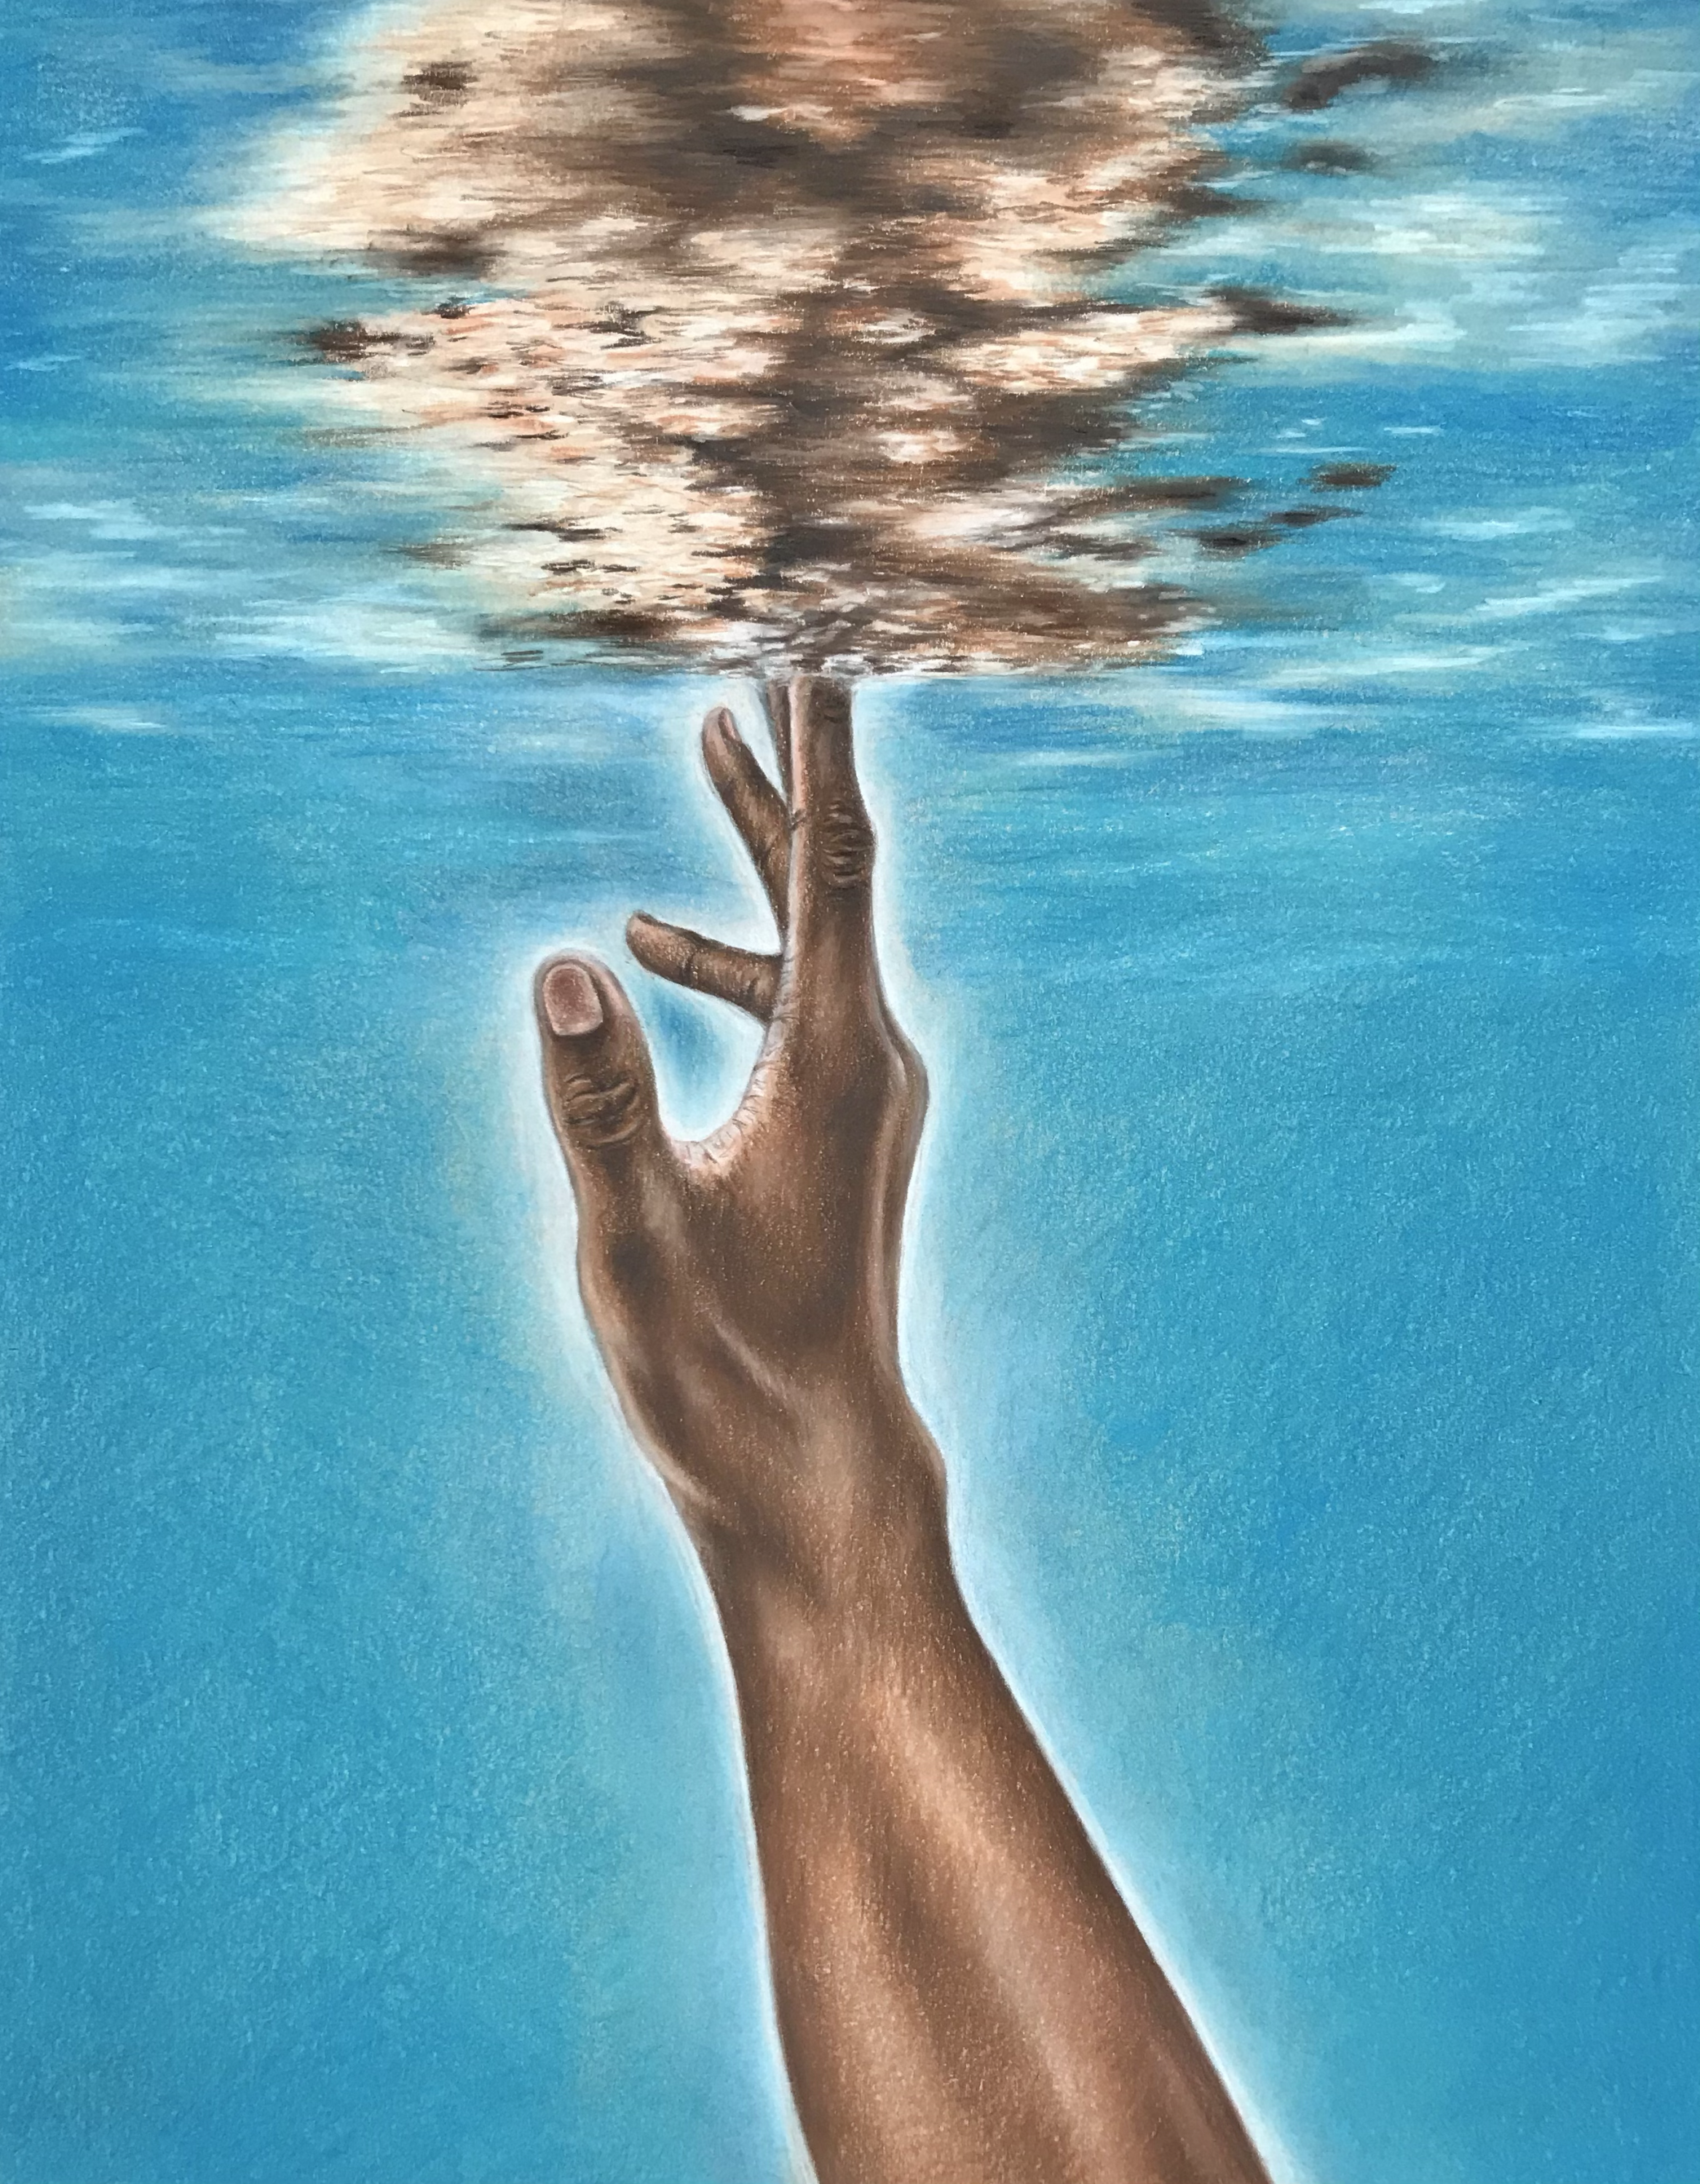 Hand underneath water reaching towards the surface.